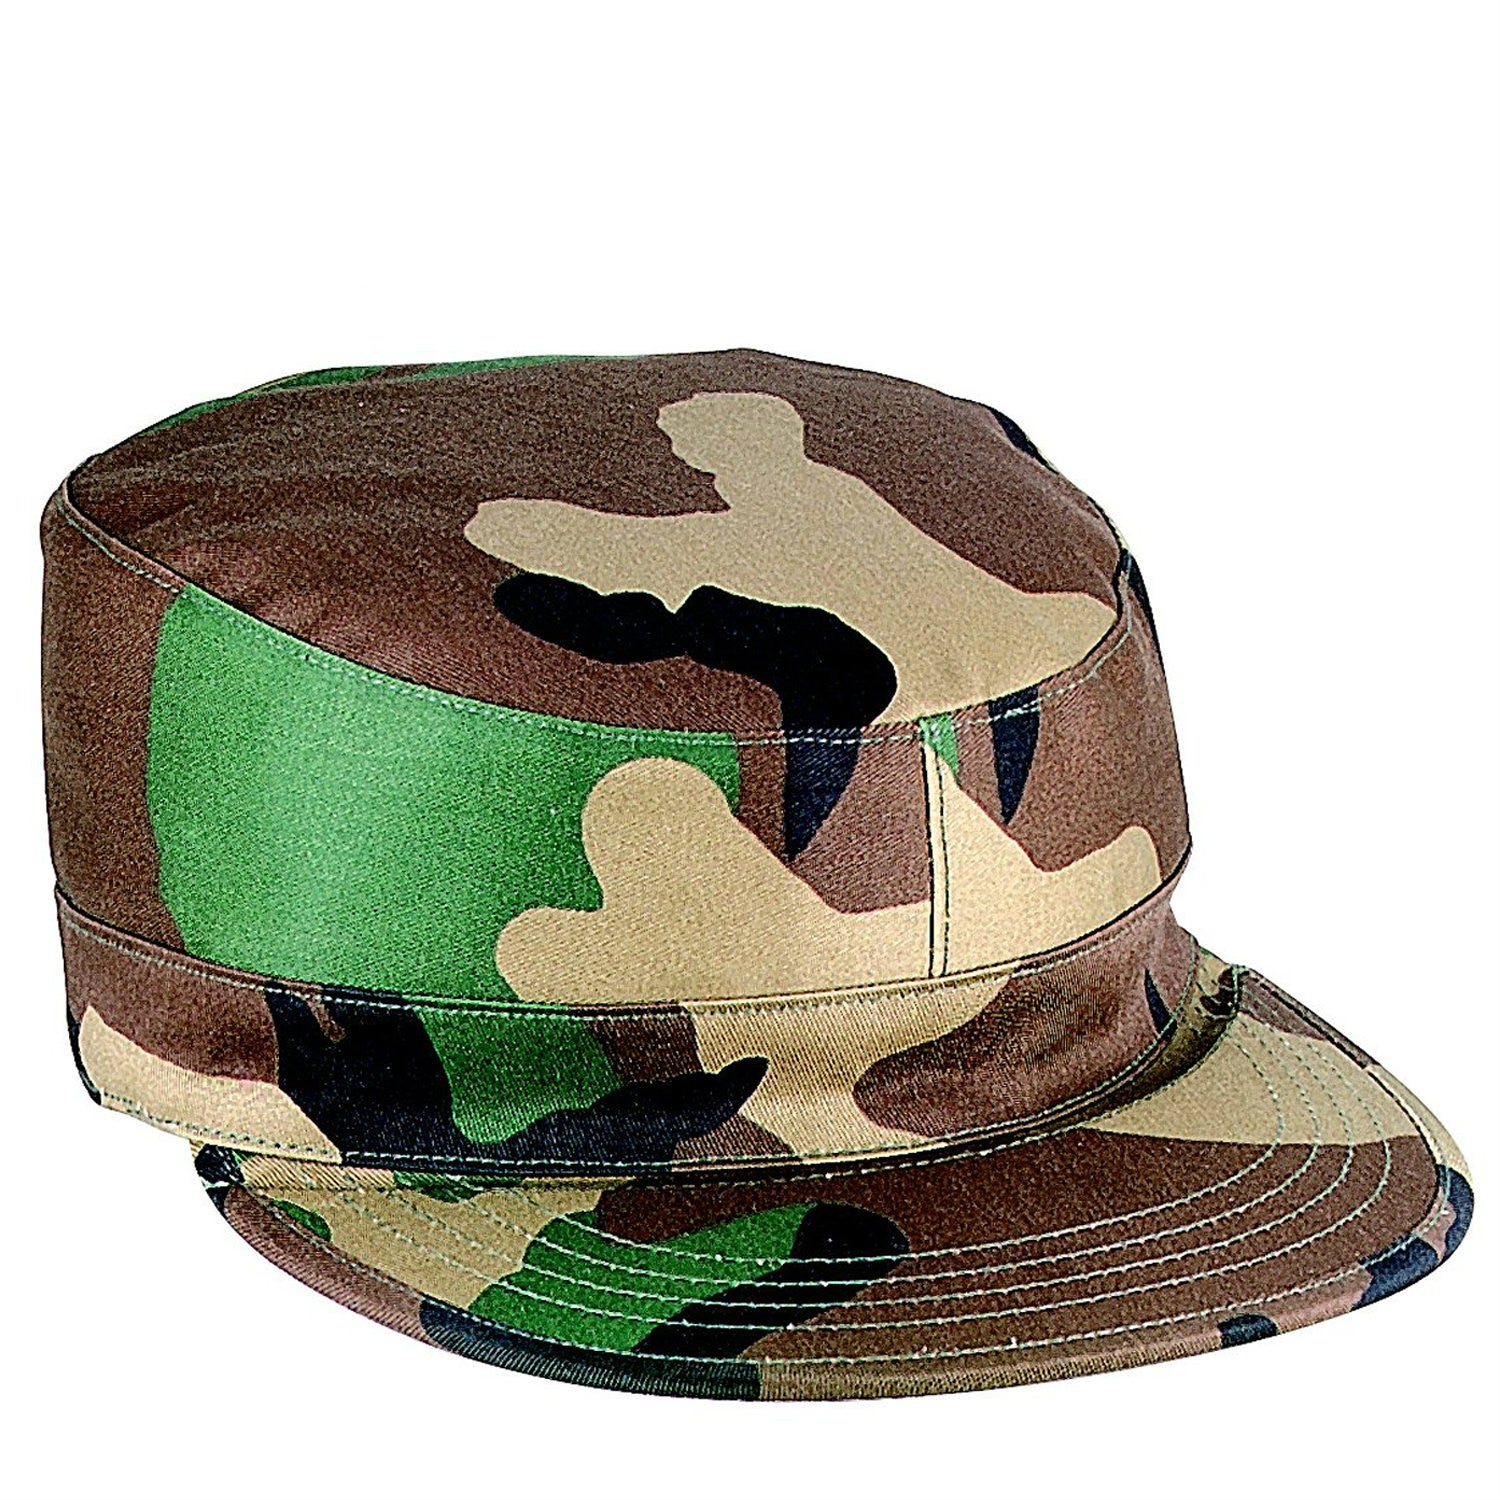 2 Ply Rip Stop Army Ranger Fatigue Hat With Map Pocket - Indy Army Navy